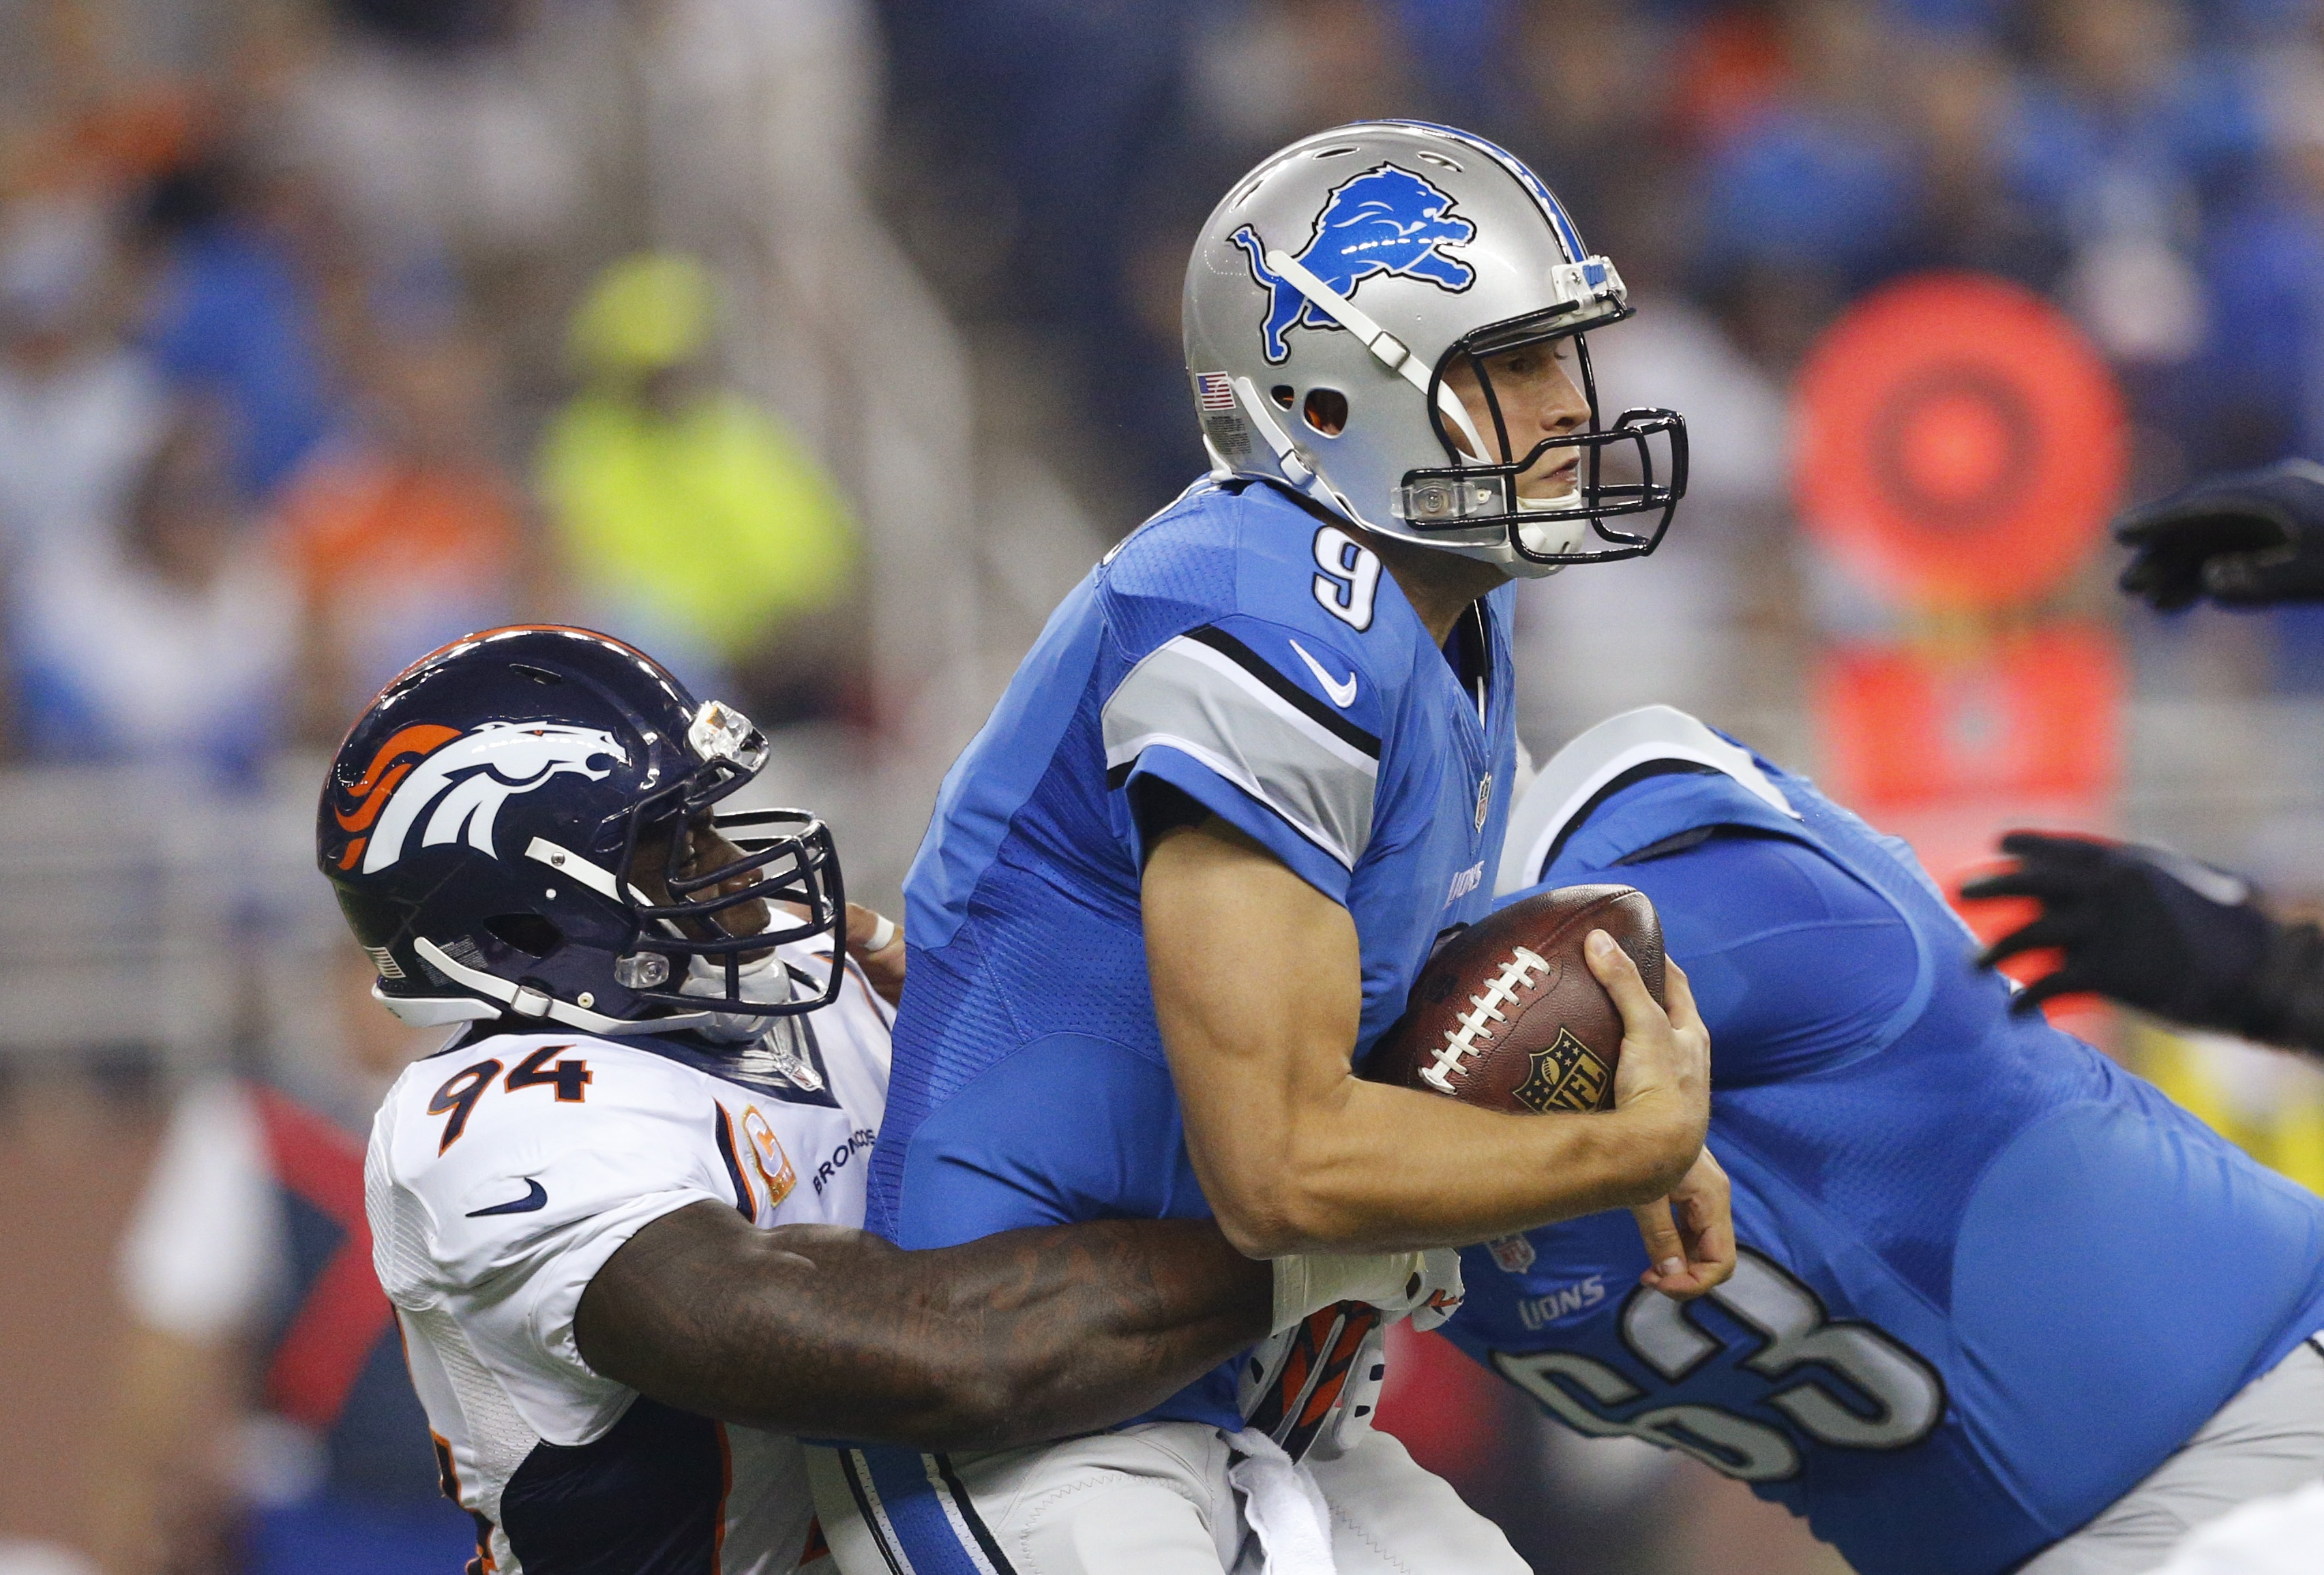 Detroit Lions quarterback Matthew Stafford is sacked by Denver Broncos outside linebacker DeMarcus Ware (94) during the first half of an NFL football game, Sunday, Sept. 27, 2015, in Detroit. (AP Photo/Rick Osentoski)